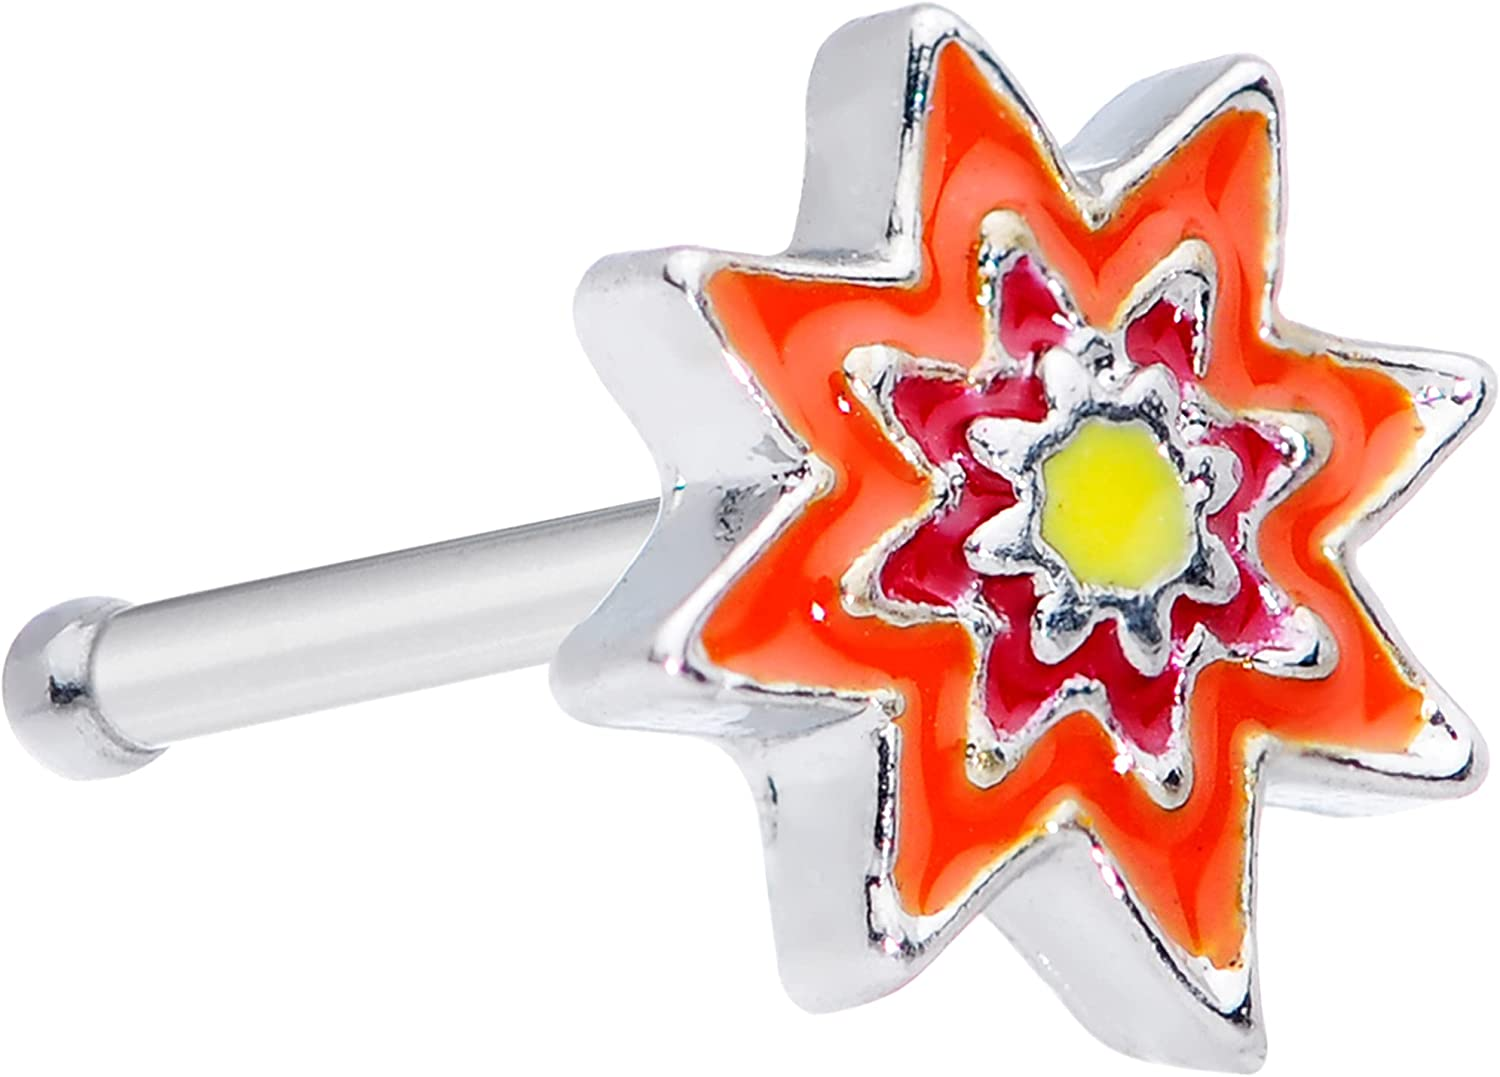 Body Candy Womens 20G 316L Steel Nose Ring Red Orange Flower Nose Stud Nose Bone Body Piercing Jewelry 1/4